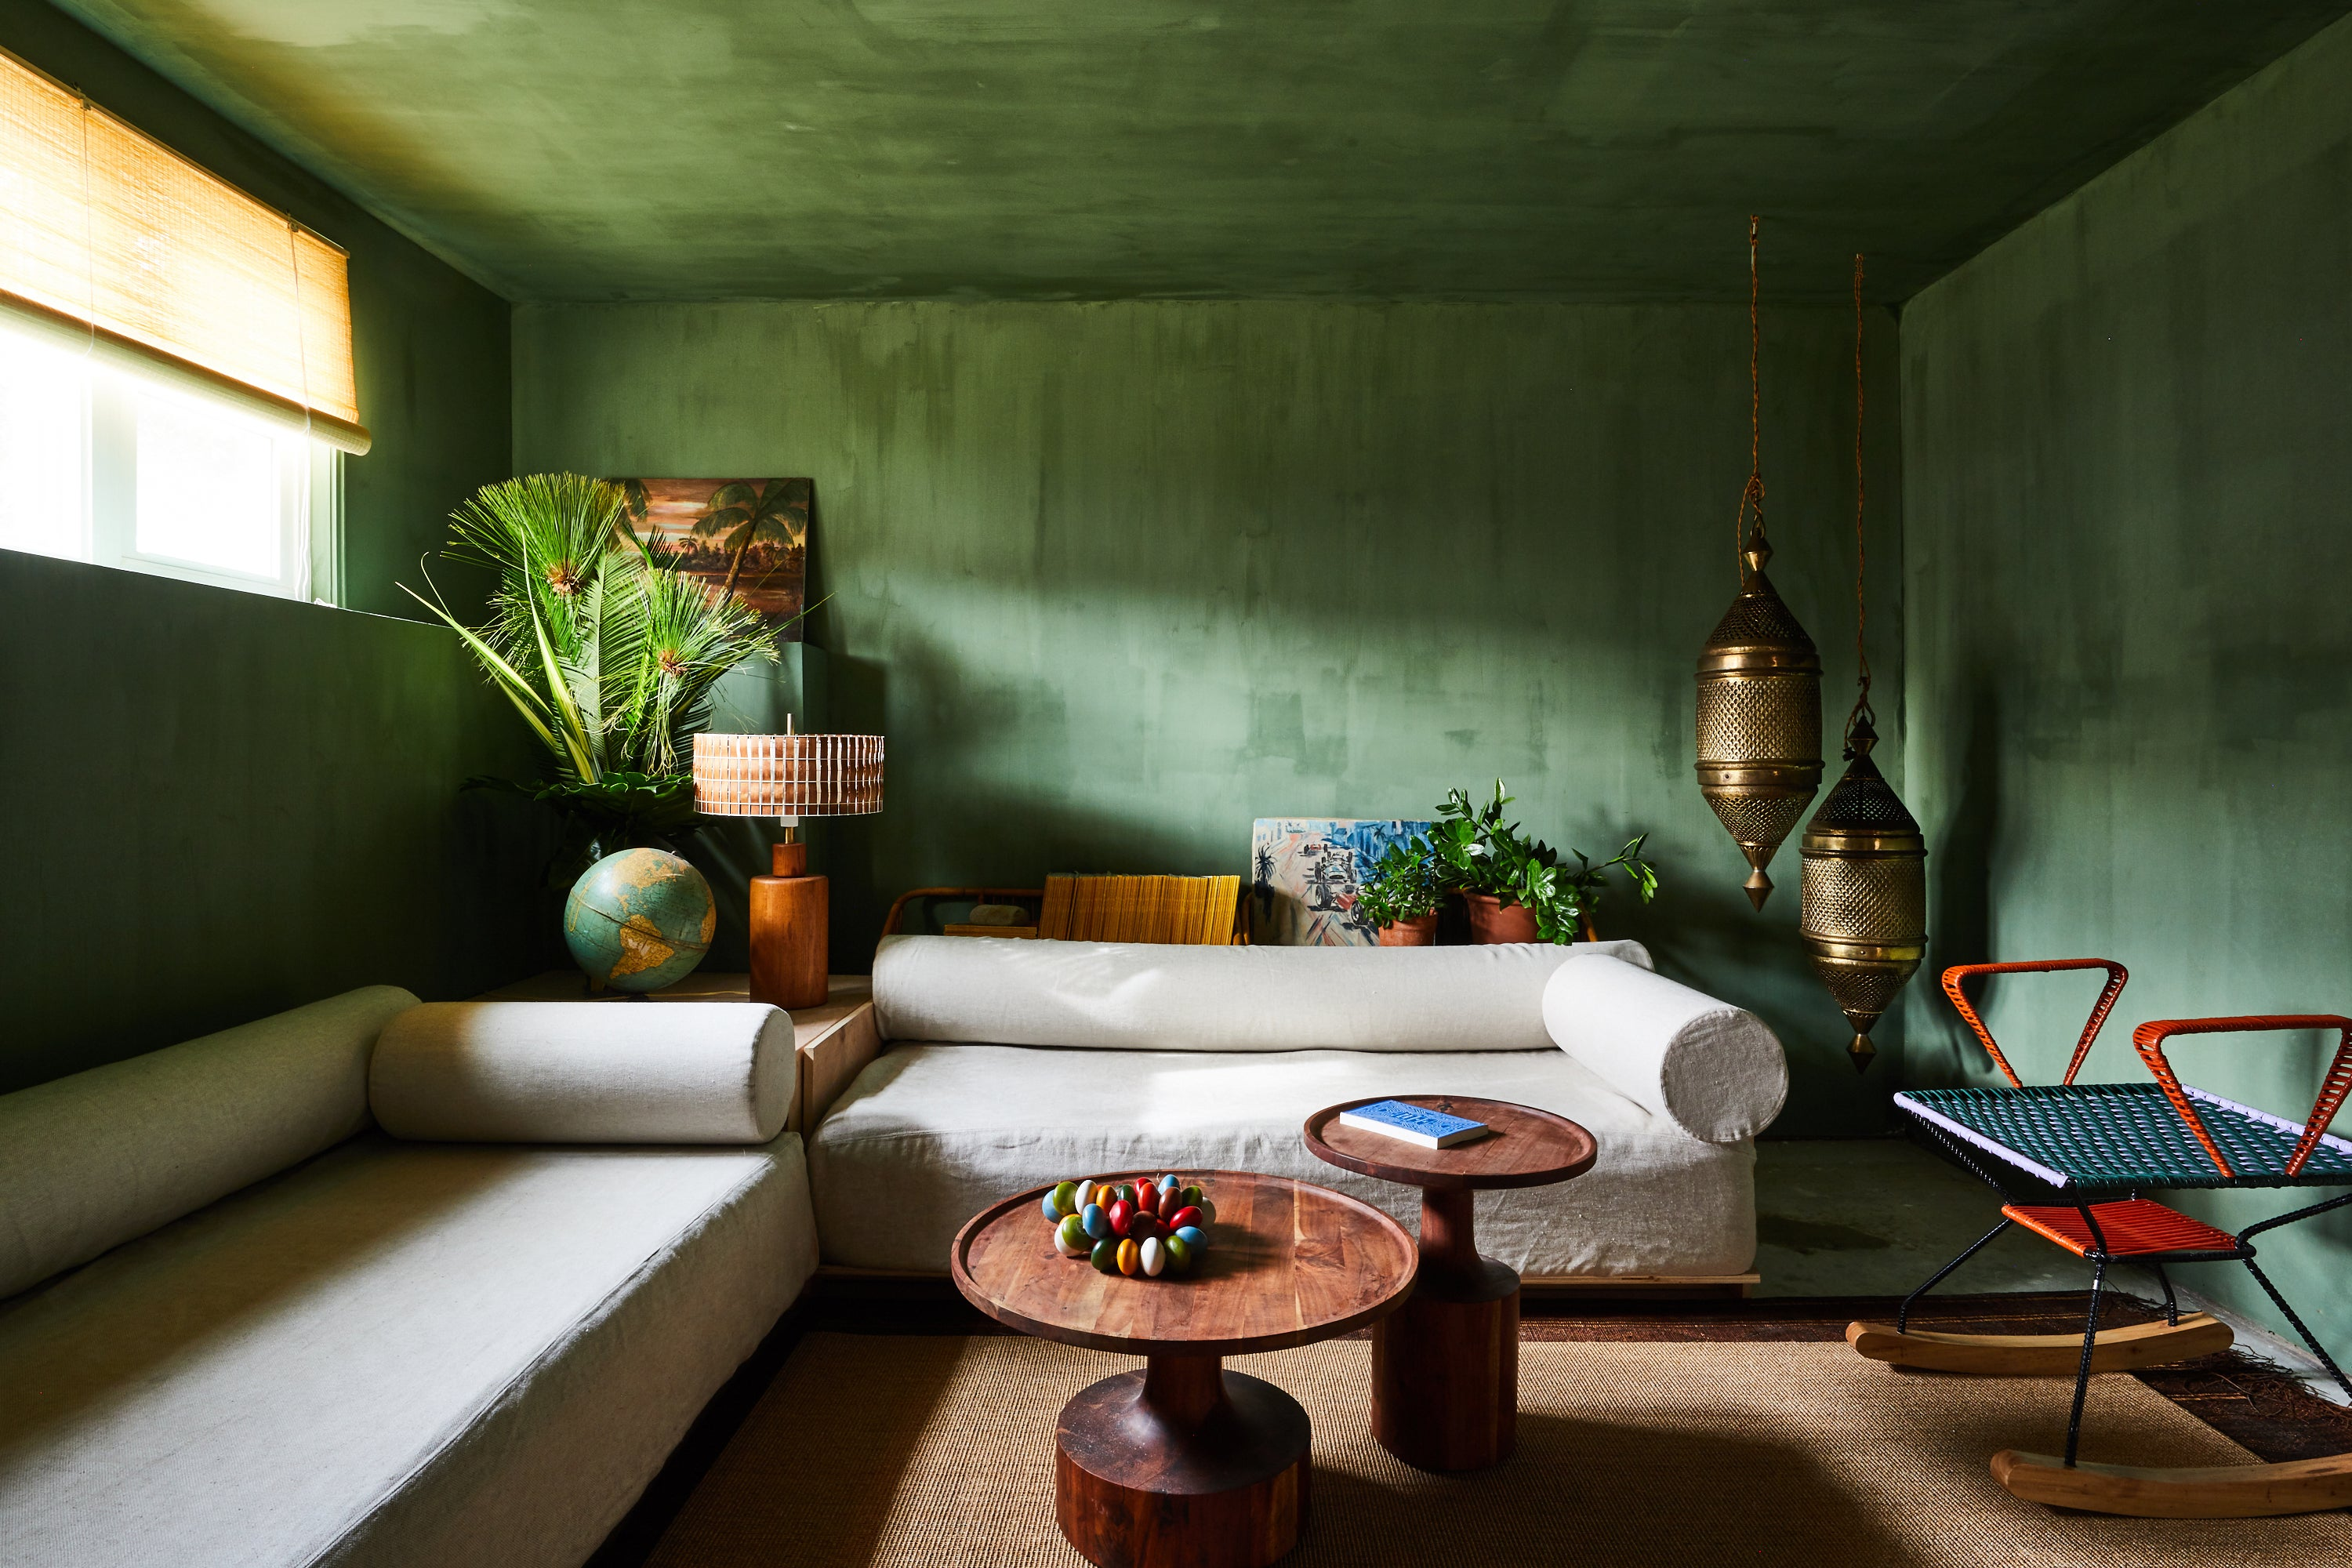 00_FEATURE_Bungalow#2_Green_Room_012